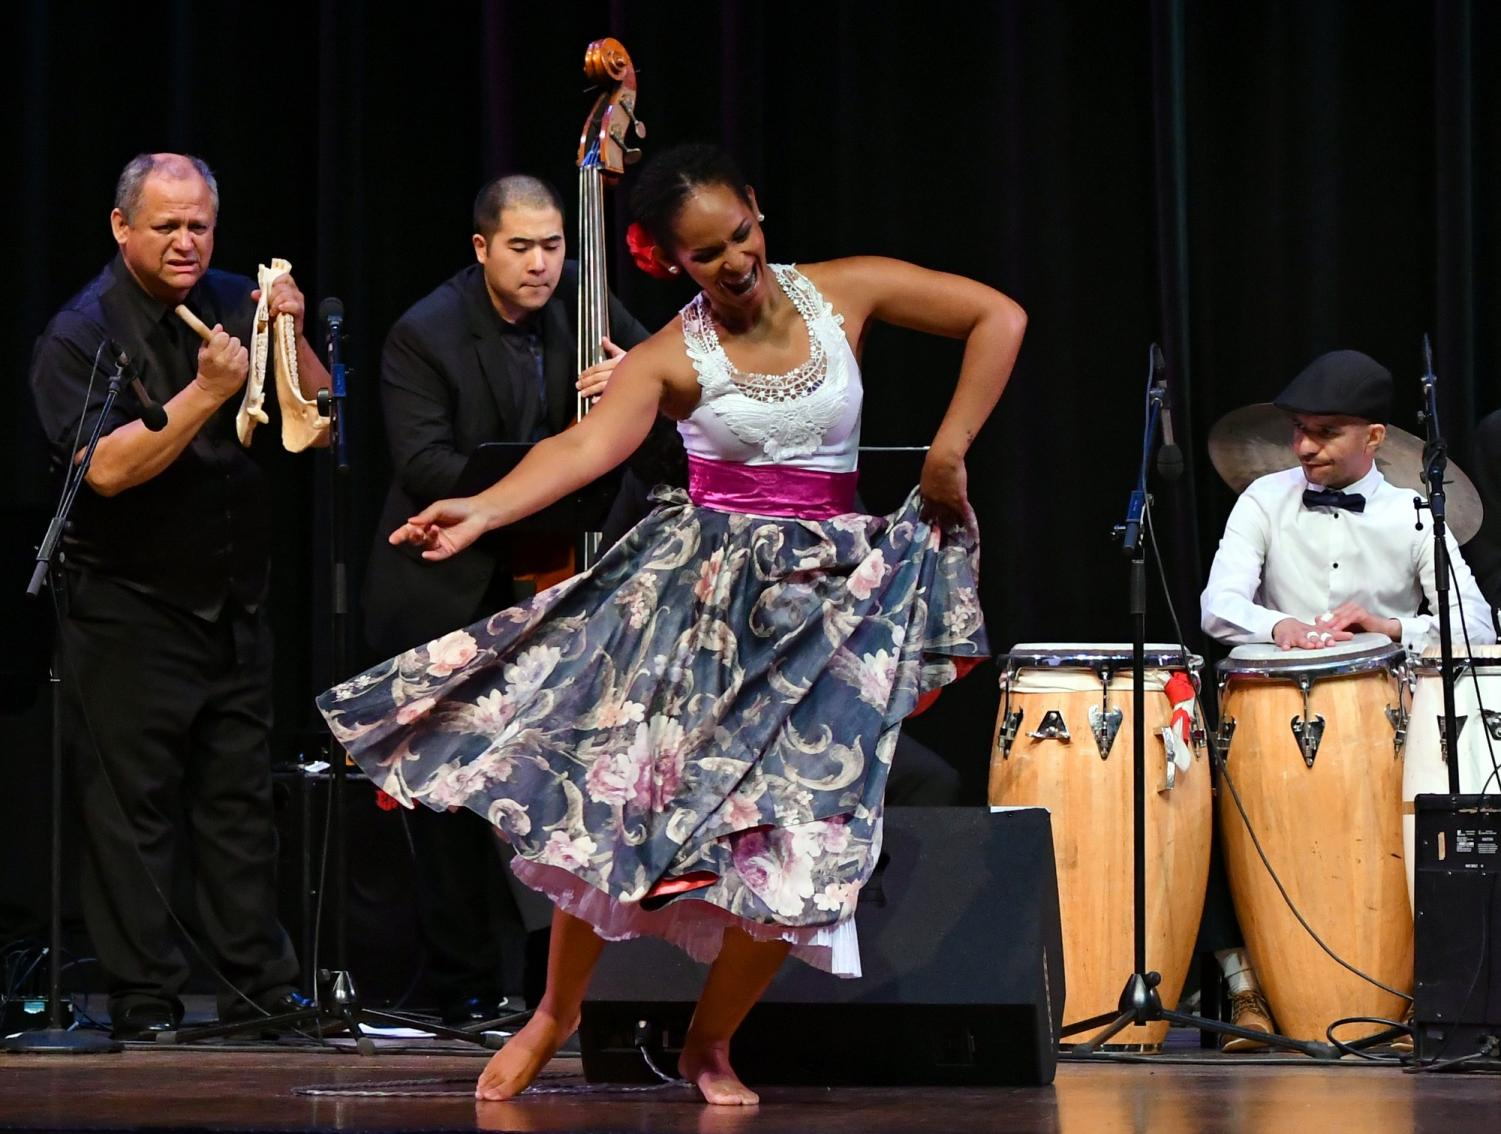 ¡!Fiesta de Jazz! brings workshops and variety of jazz music to campus